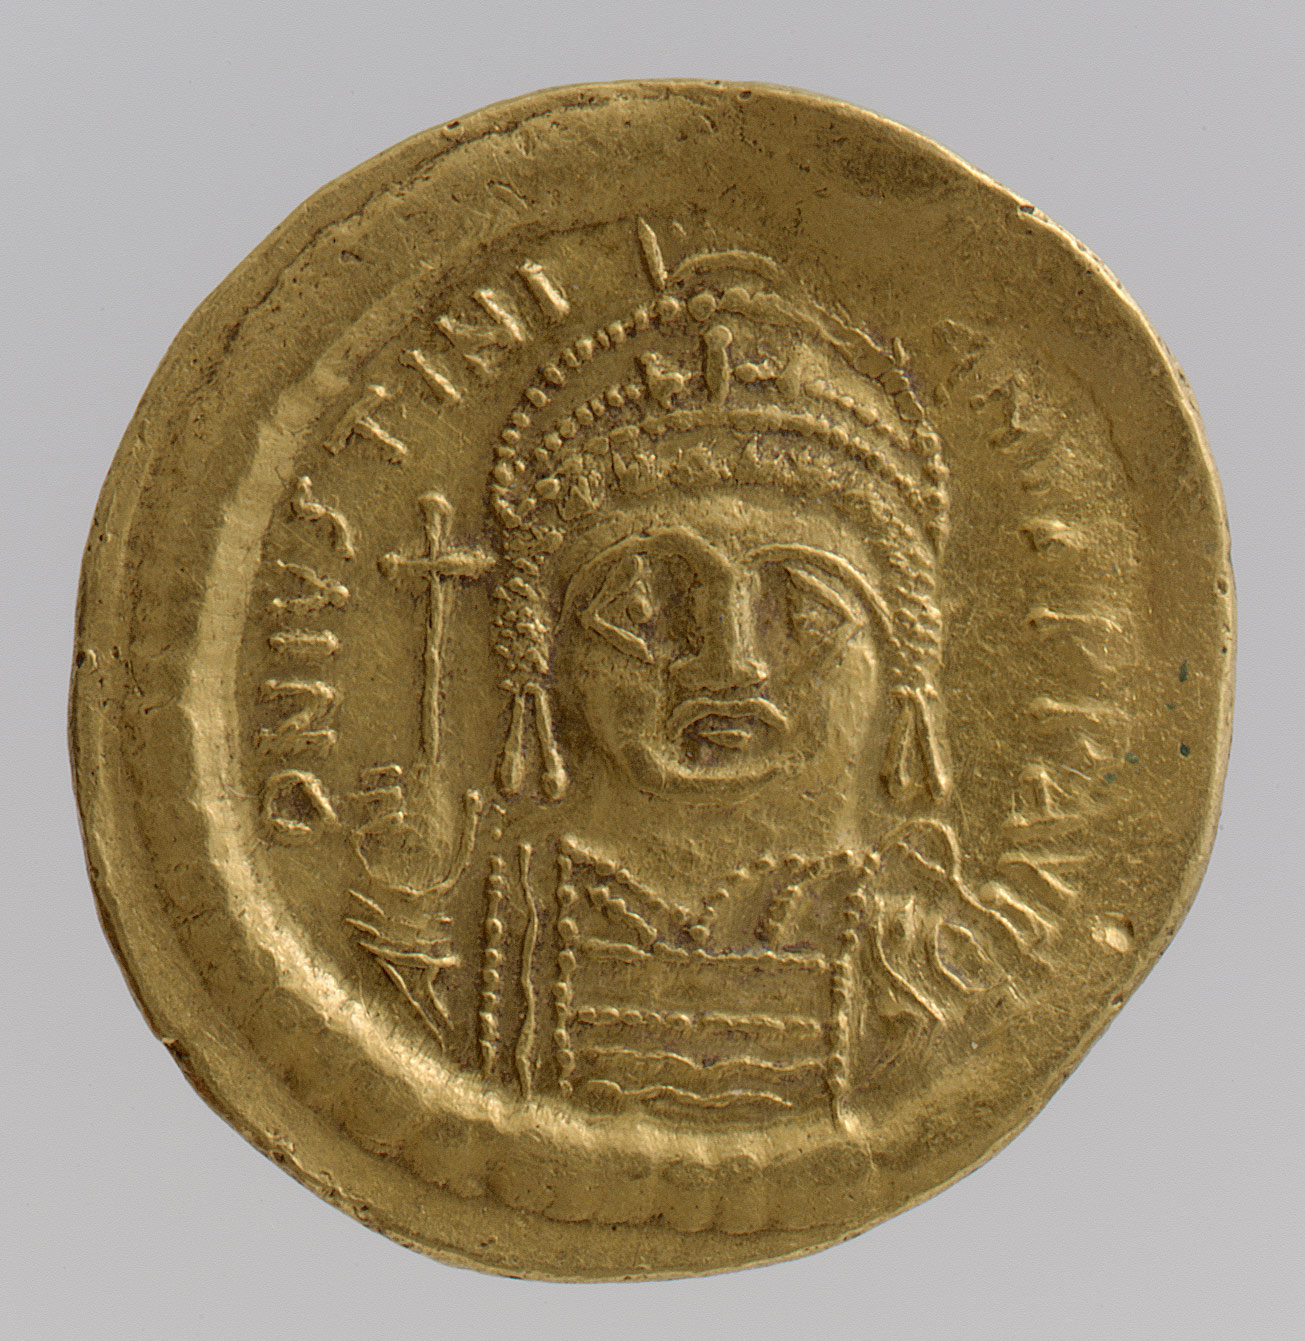 Solidus of Justinian I